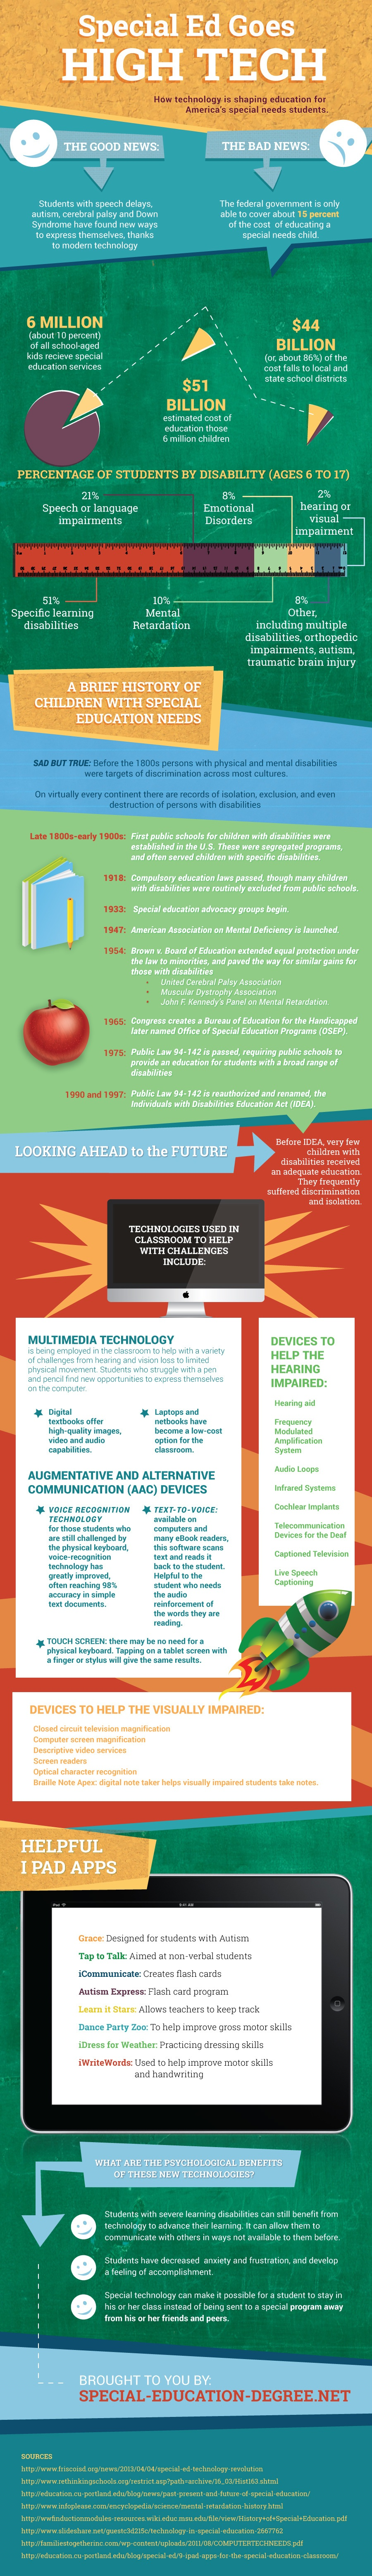 Educational-Technology-in-Special-Education-Infographic